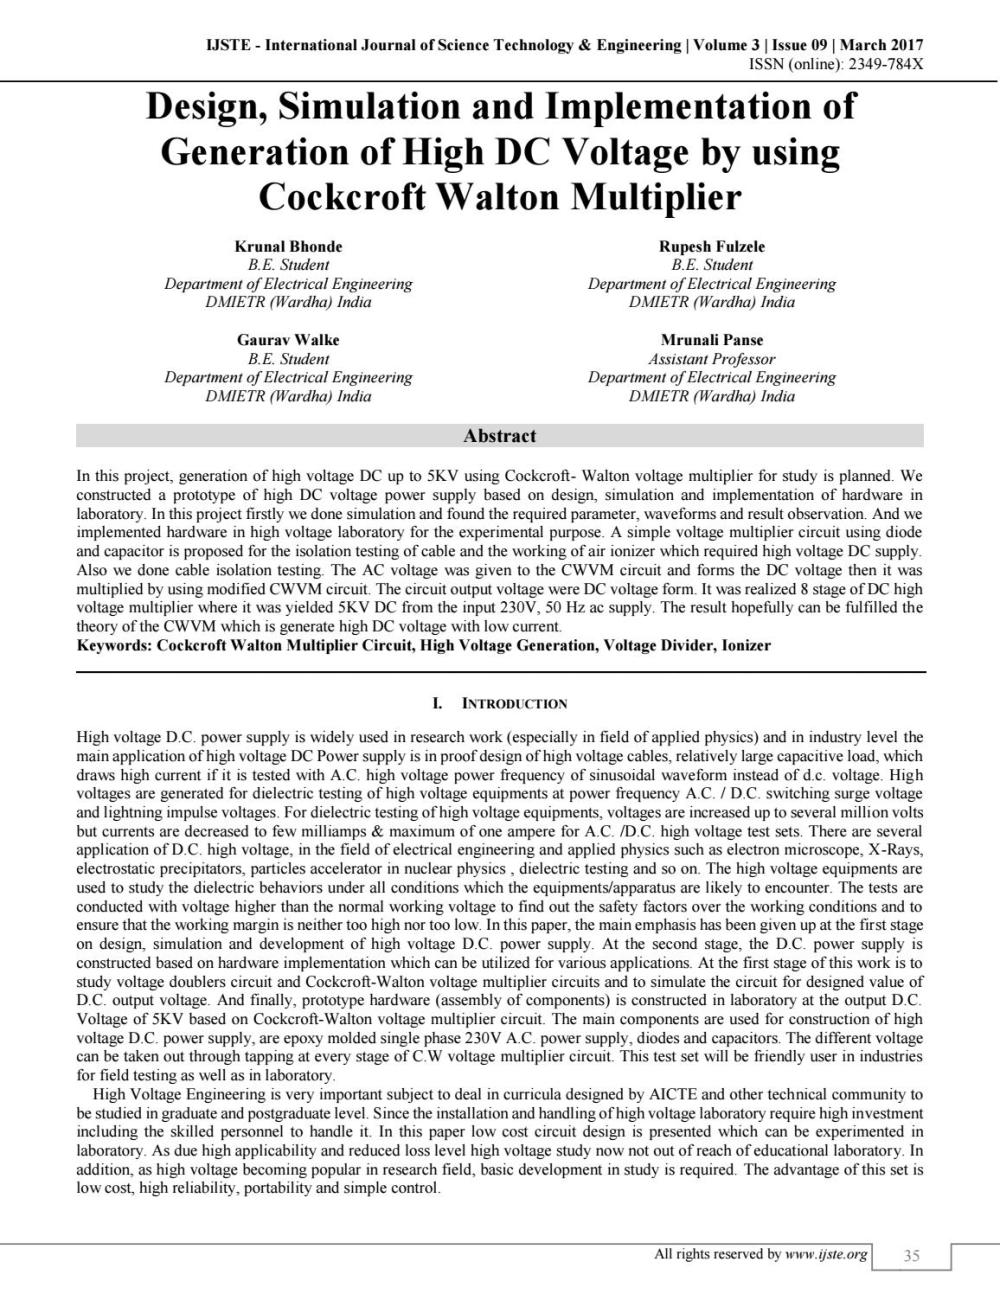 medium resolution of design simulation and implementation of generation of high dc voltage by using cockcroft walton vol by international journal of science technology and